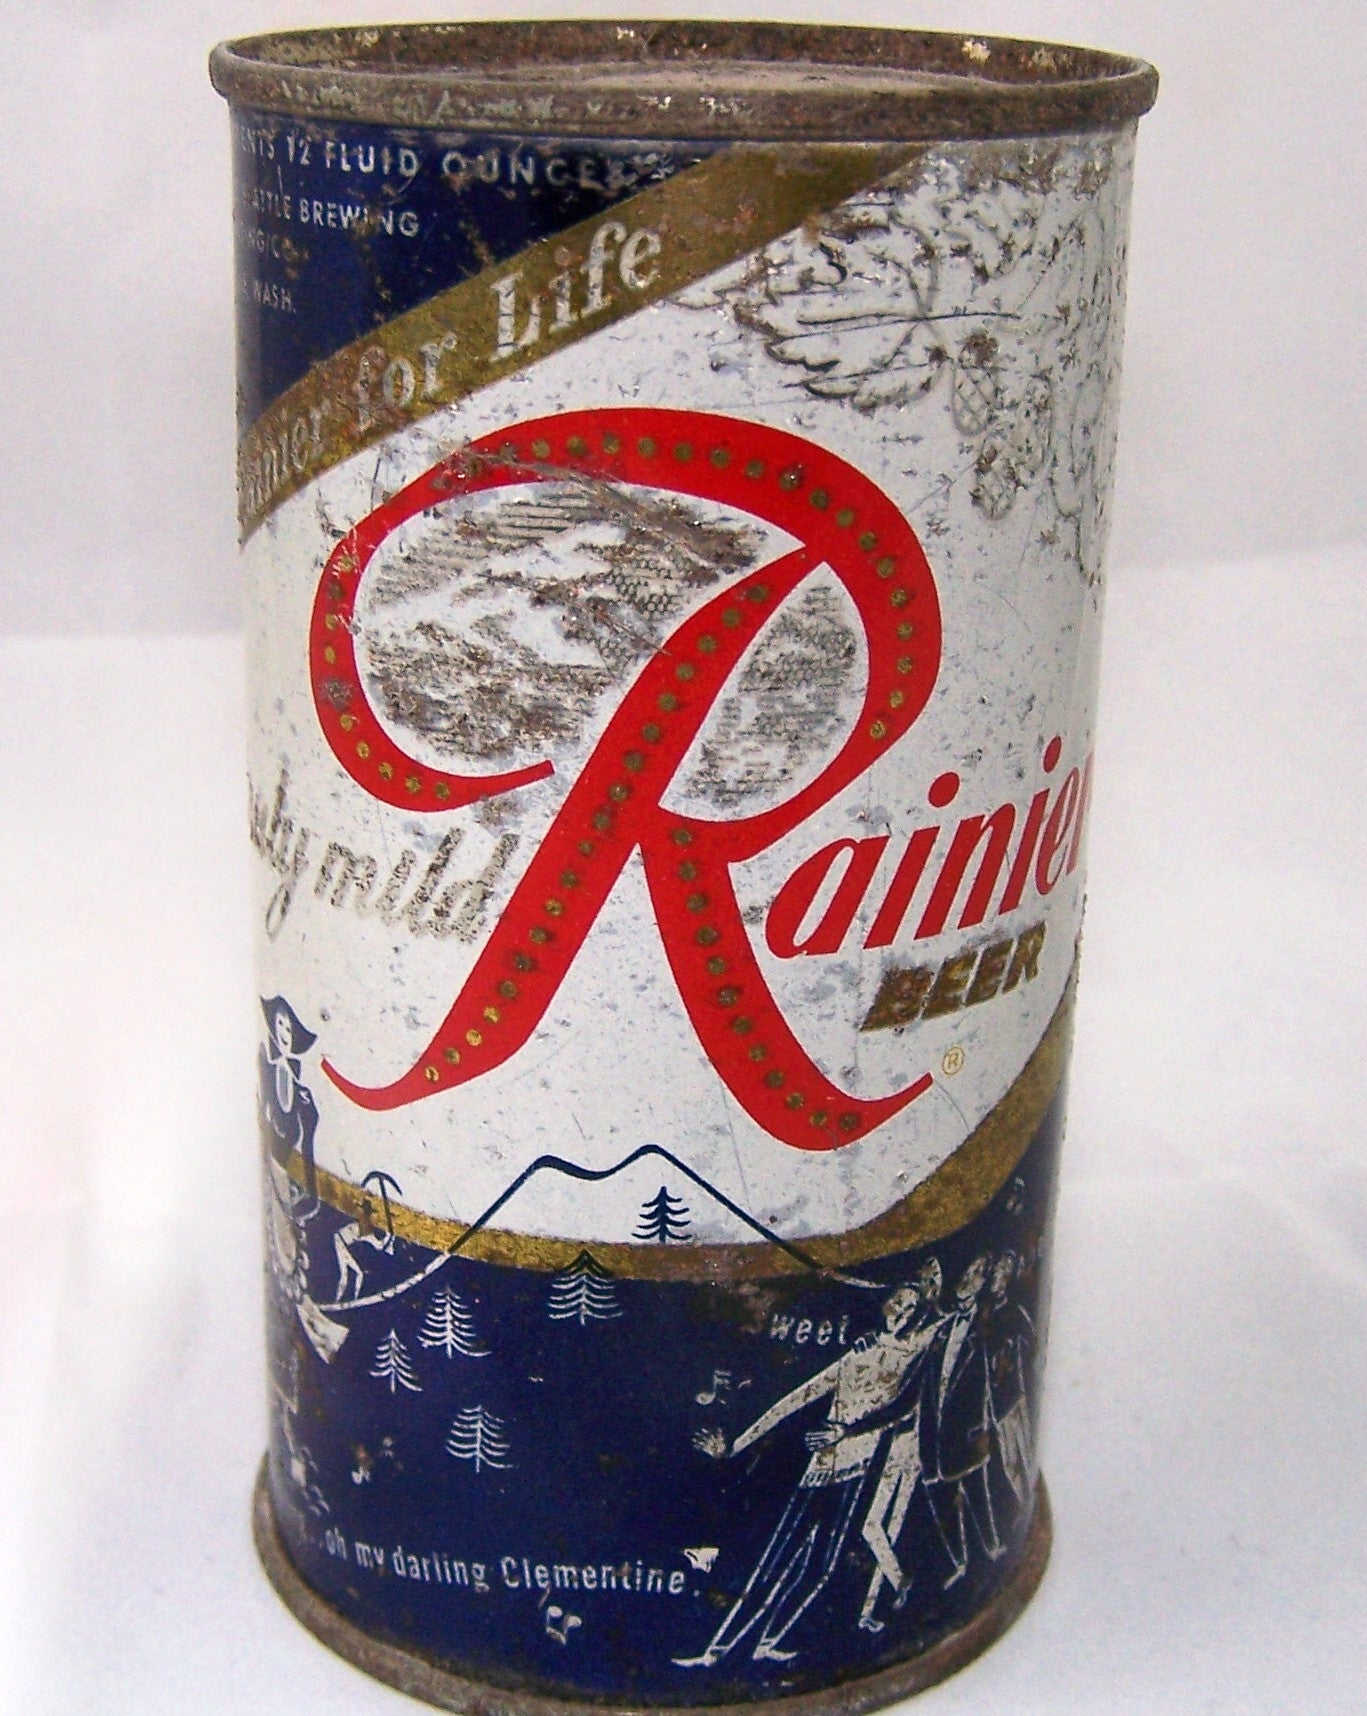 Rainier Jubilee Beer, USBC 118-15 Grade 2- Sold on 3/24/15